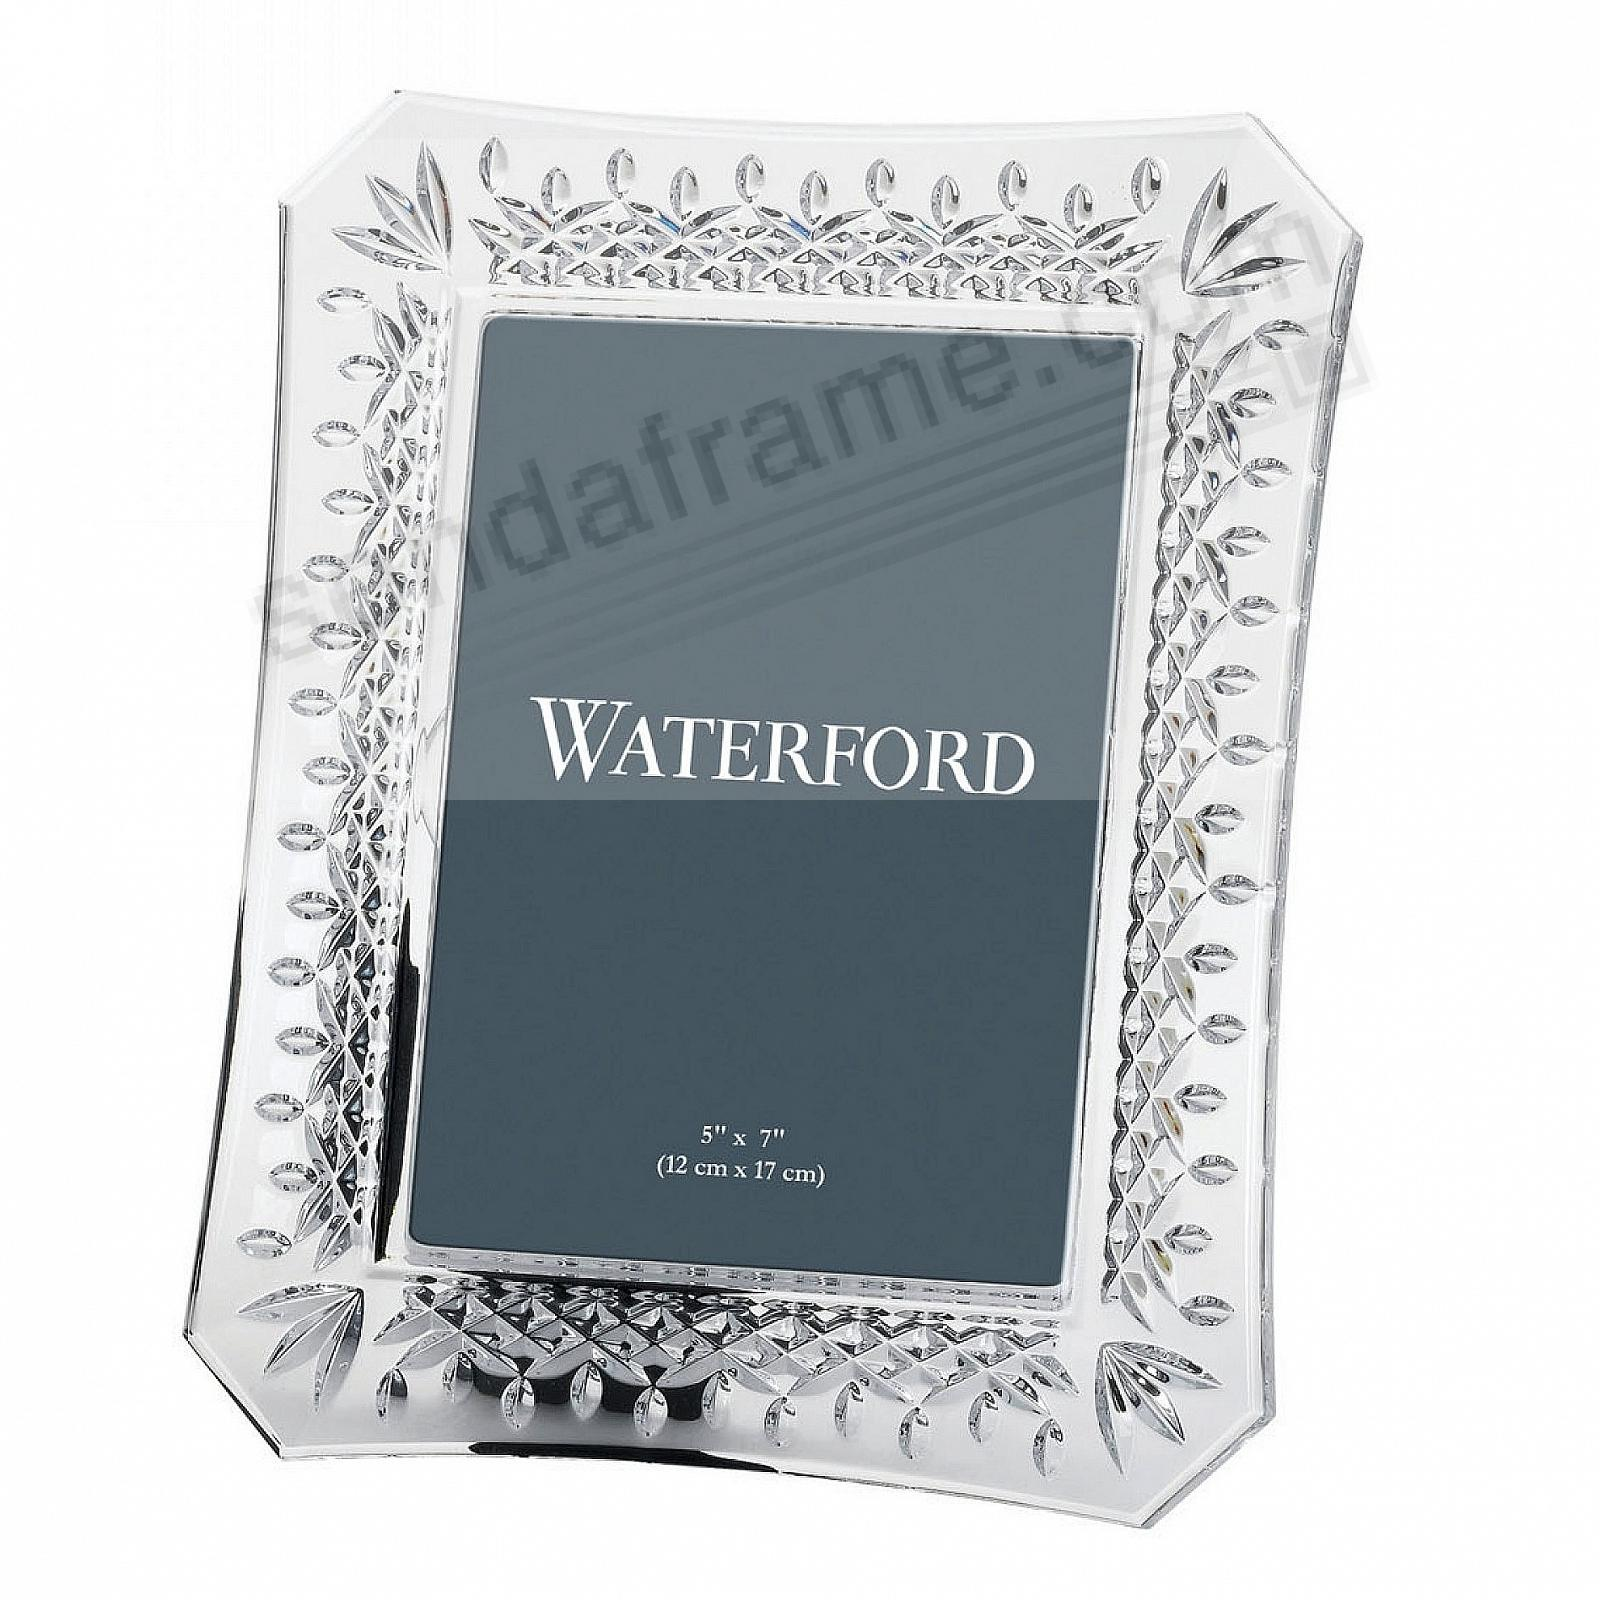 The Original LISMORE fine Irish Crystal frame Crafted by Waterford®